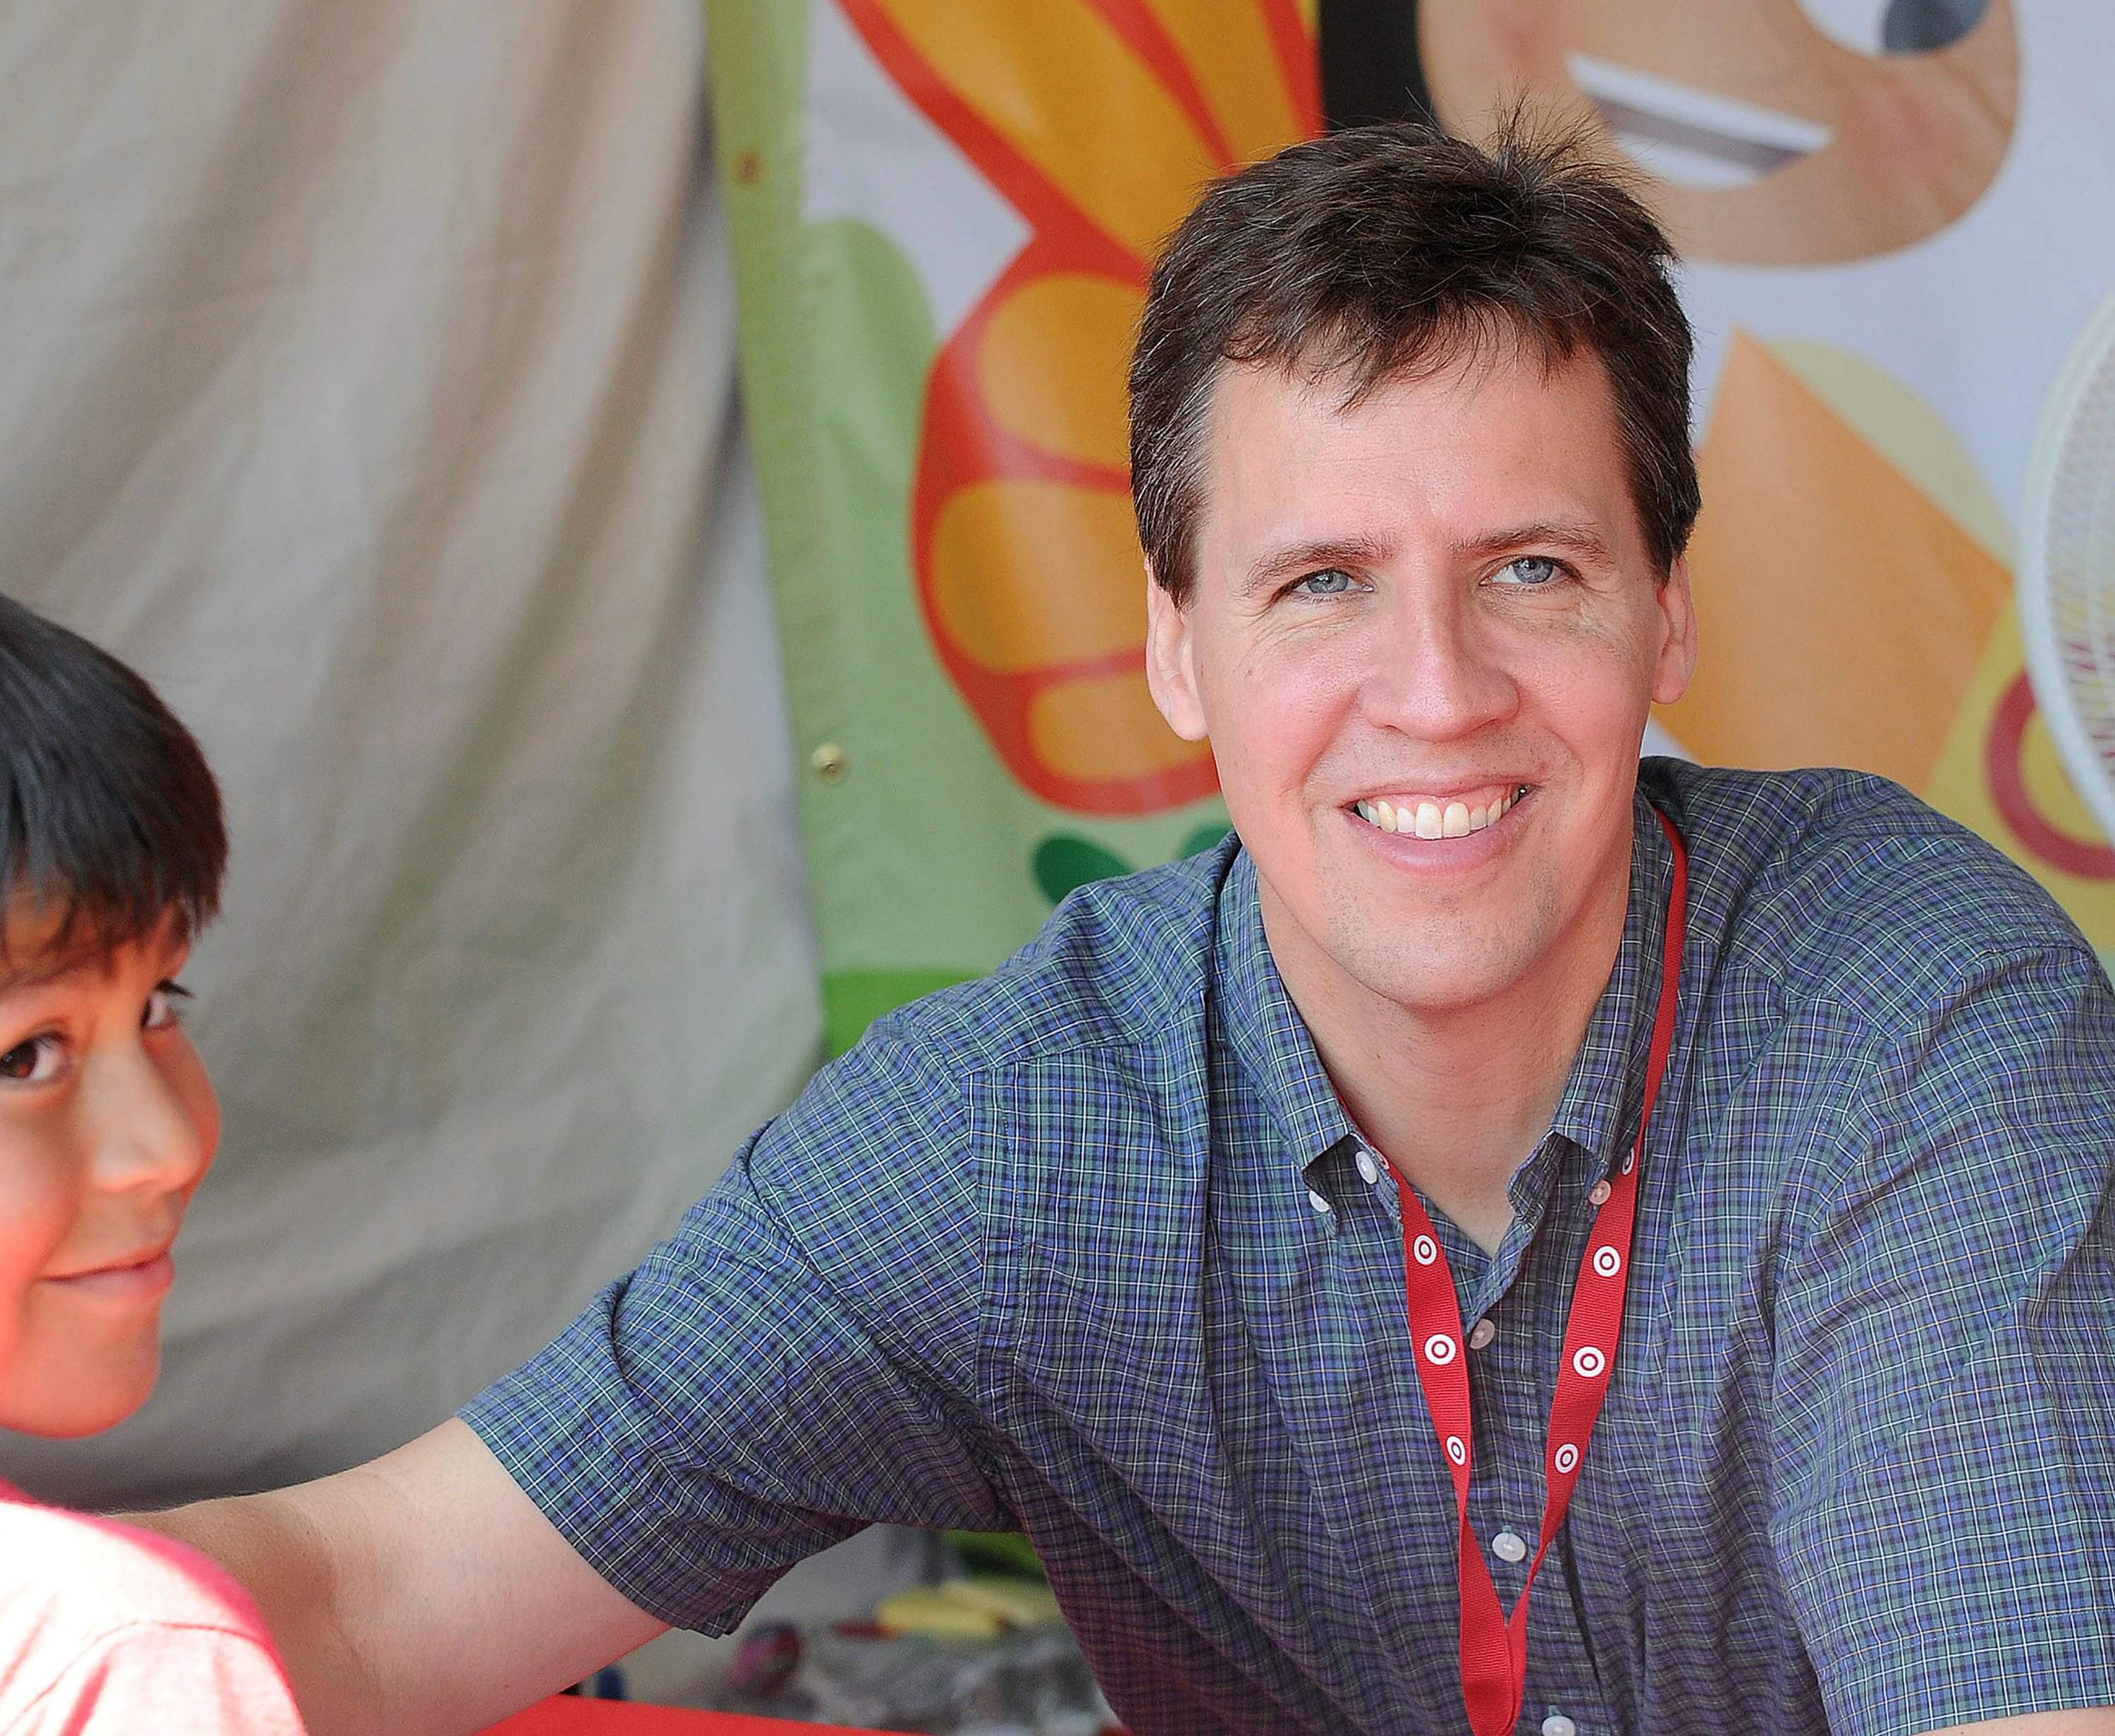 Jeff kinney marks 10th anniversary of wimpy kid series jeff kinney atendst the la times festival of books in los angeles in 2012 the first 11 novels of his diary of a wimpy kid series have sold more than 180 solutioingenieria Images